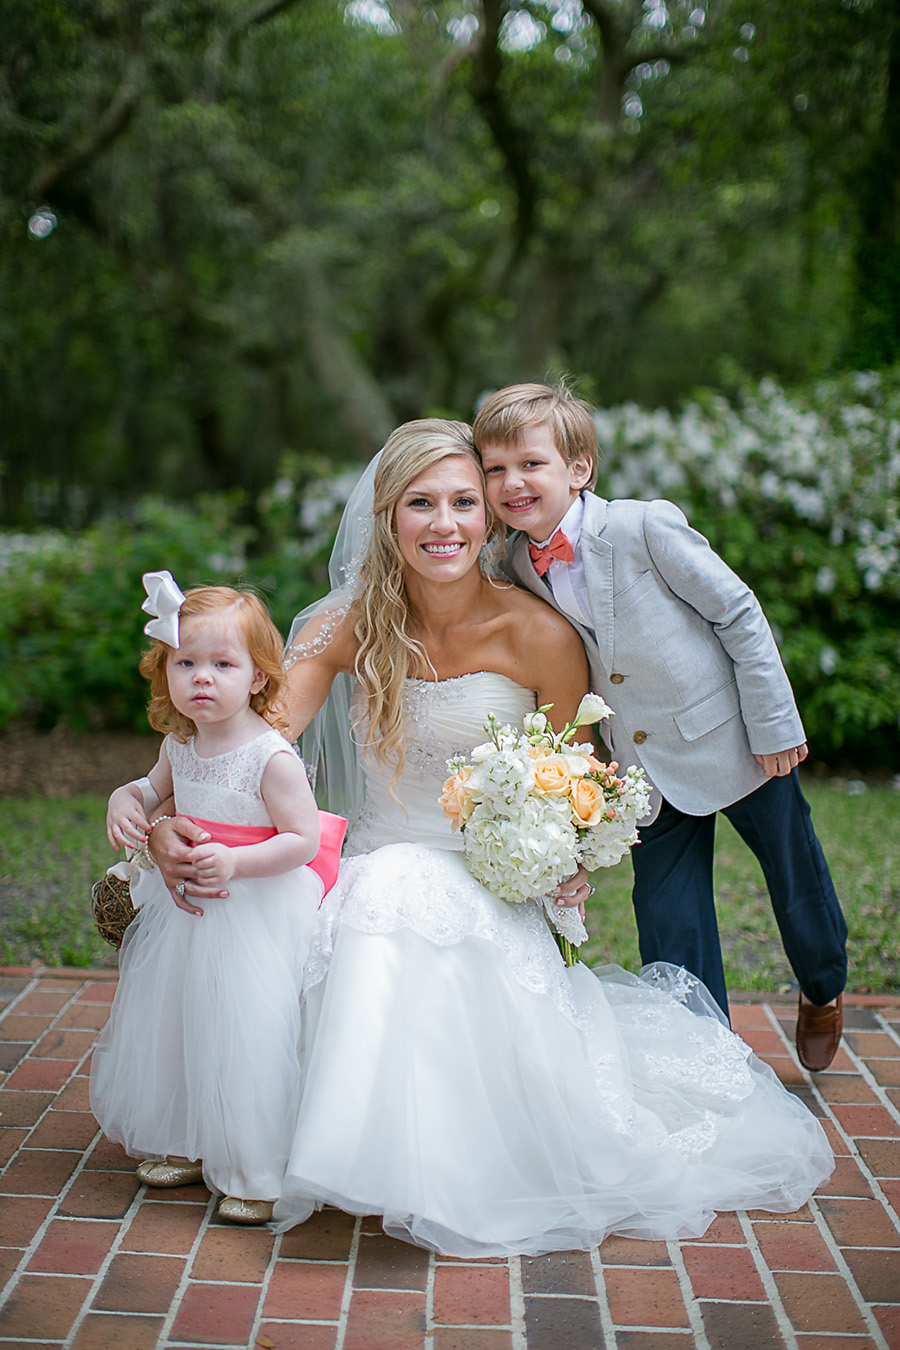 The Bride with Flower Girl and Ring Bearer - Bald Head Island Wedding - Photo by Eric Boneske